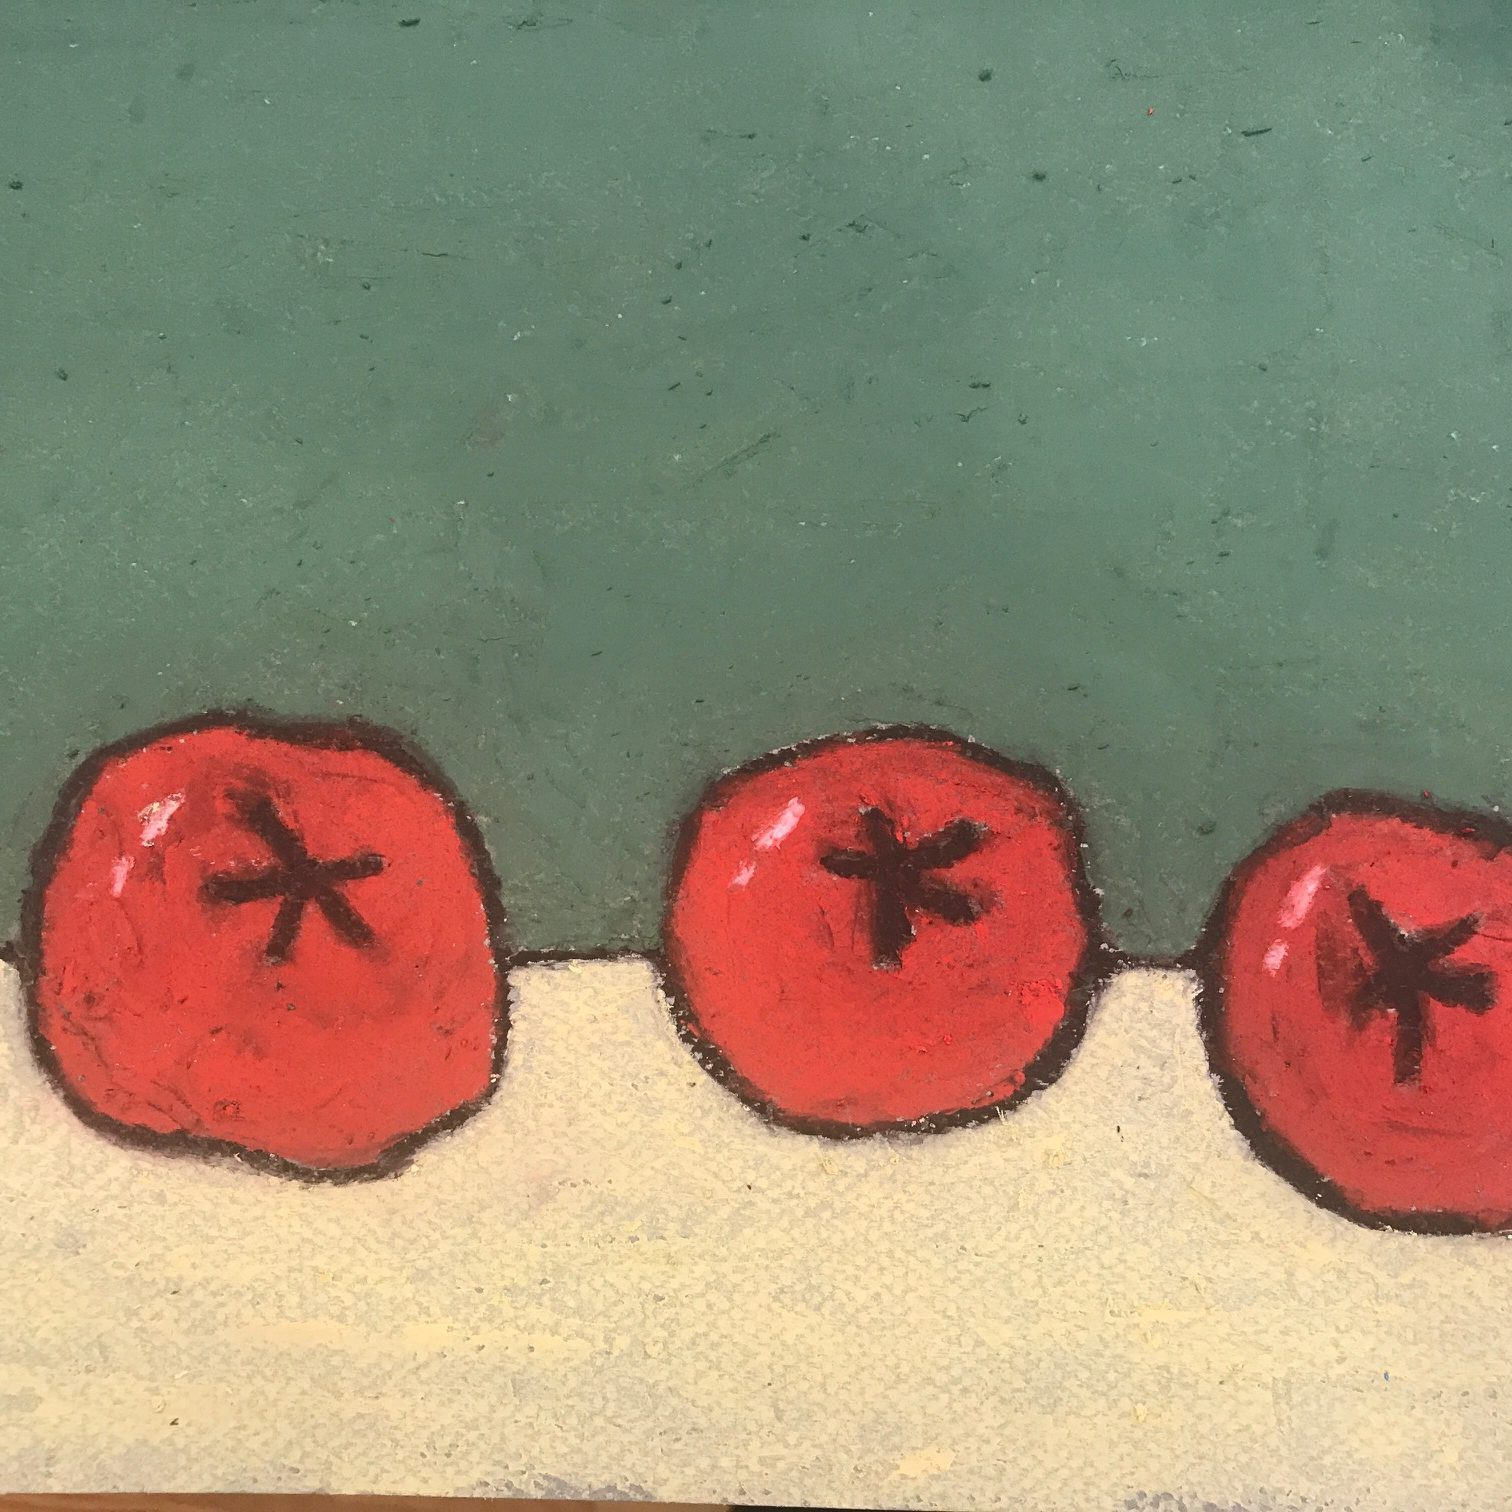 Oil pastel of three red tomatoes on a table with green background